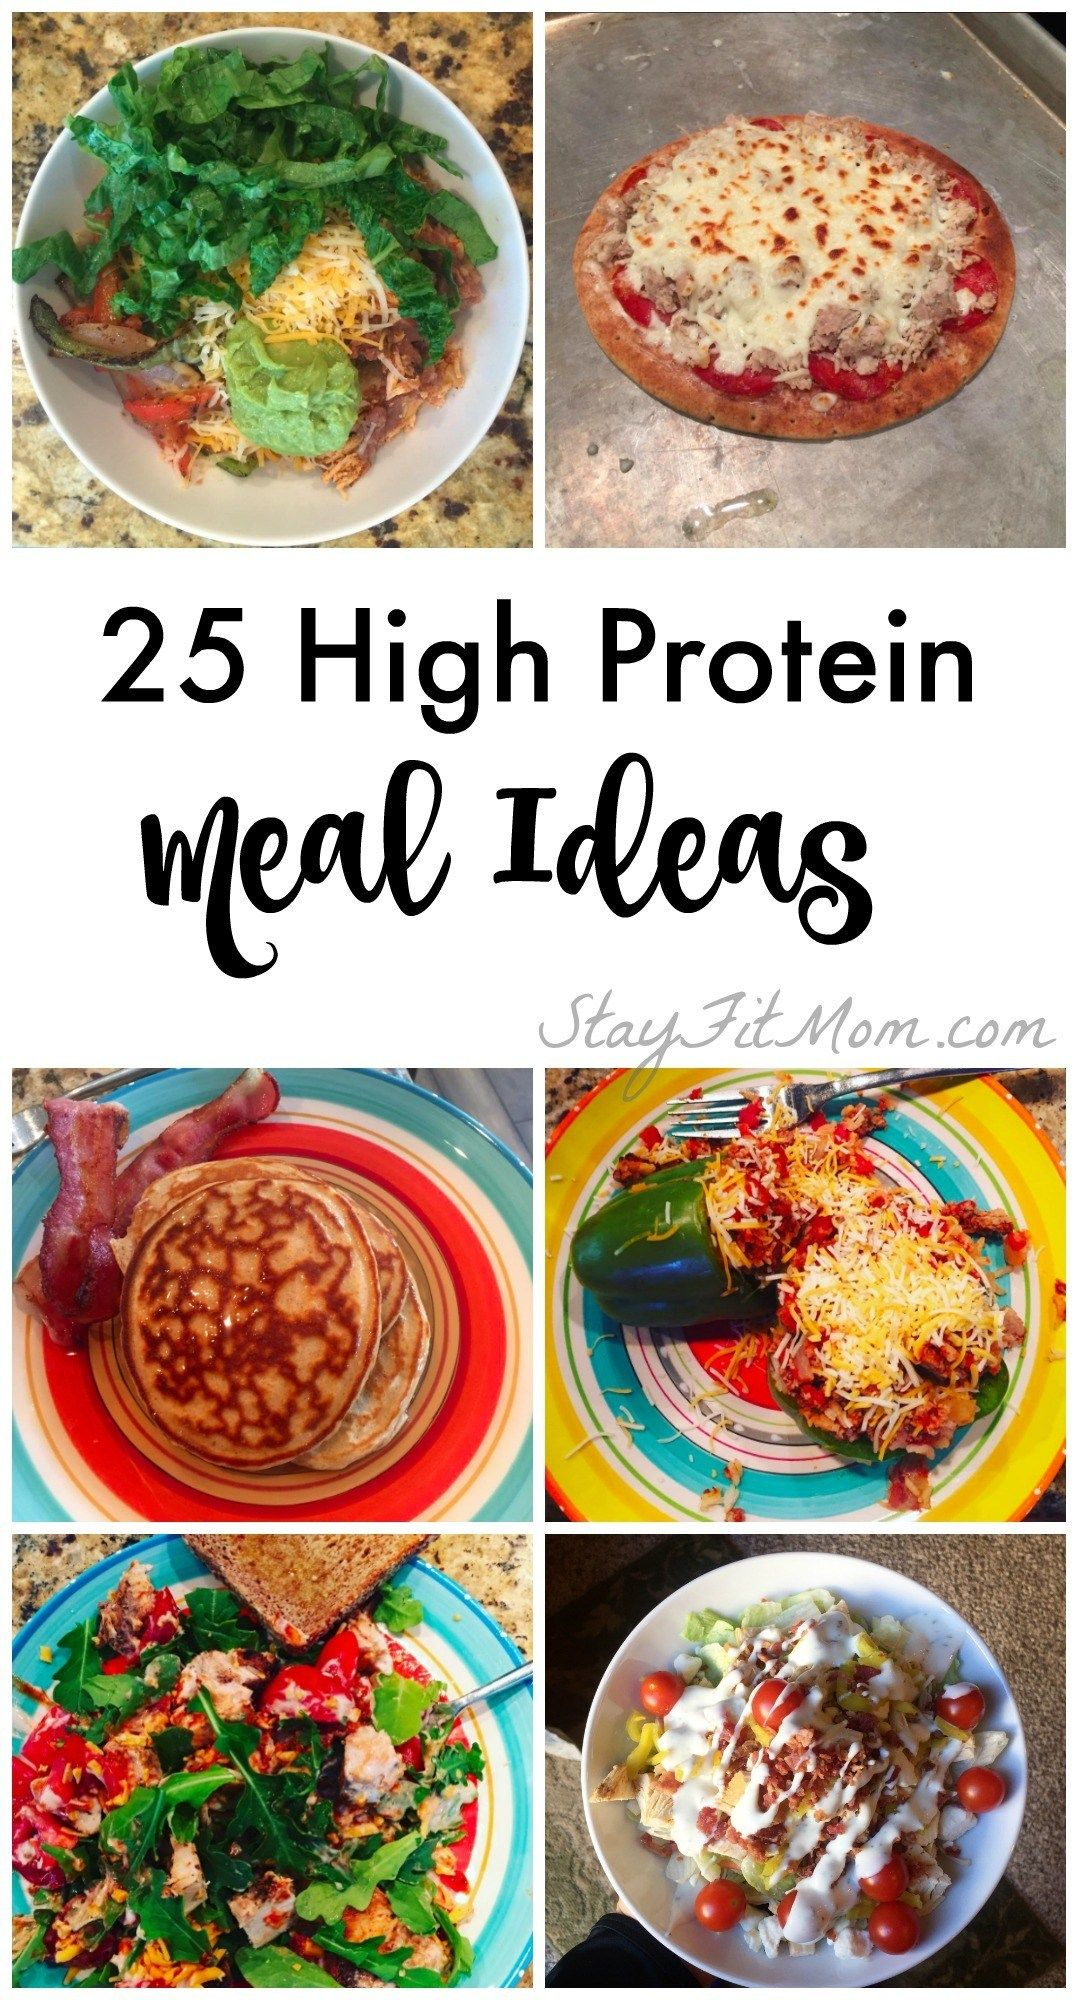 25 Easy High Protein Meal Ideas